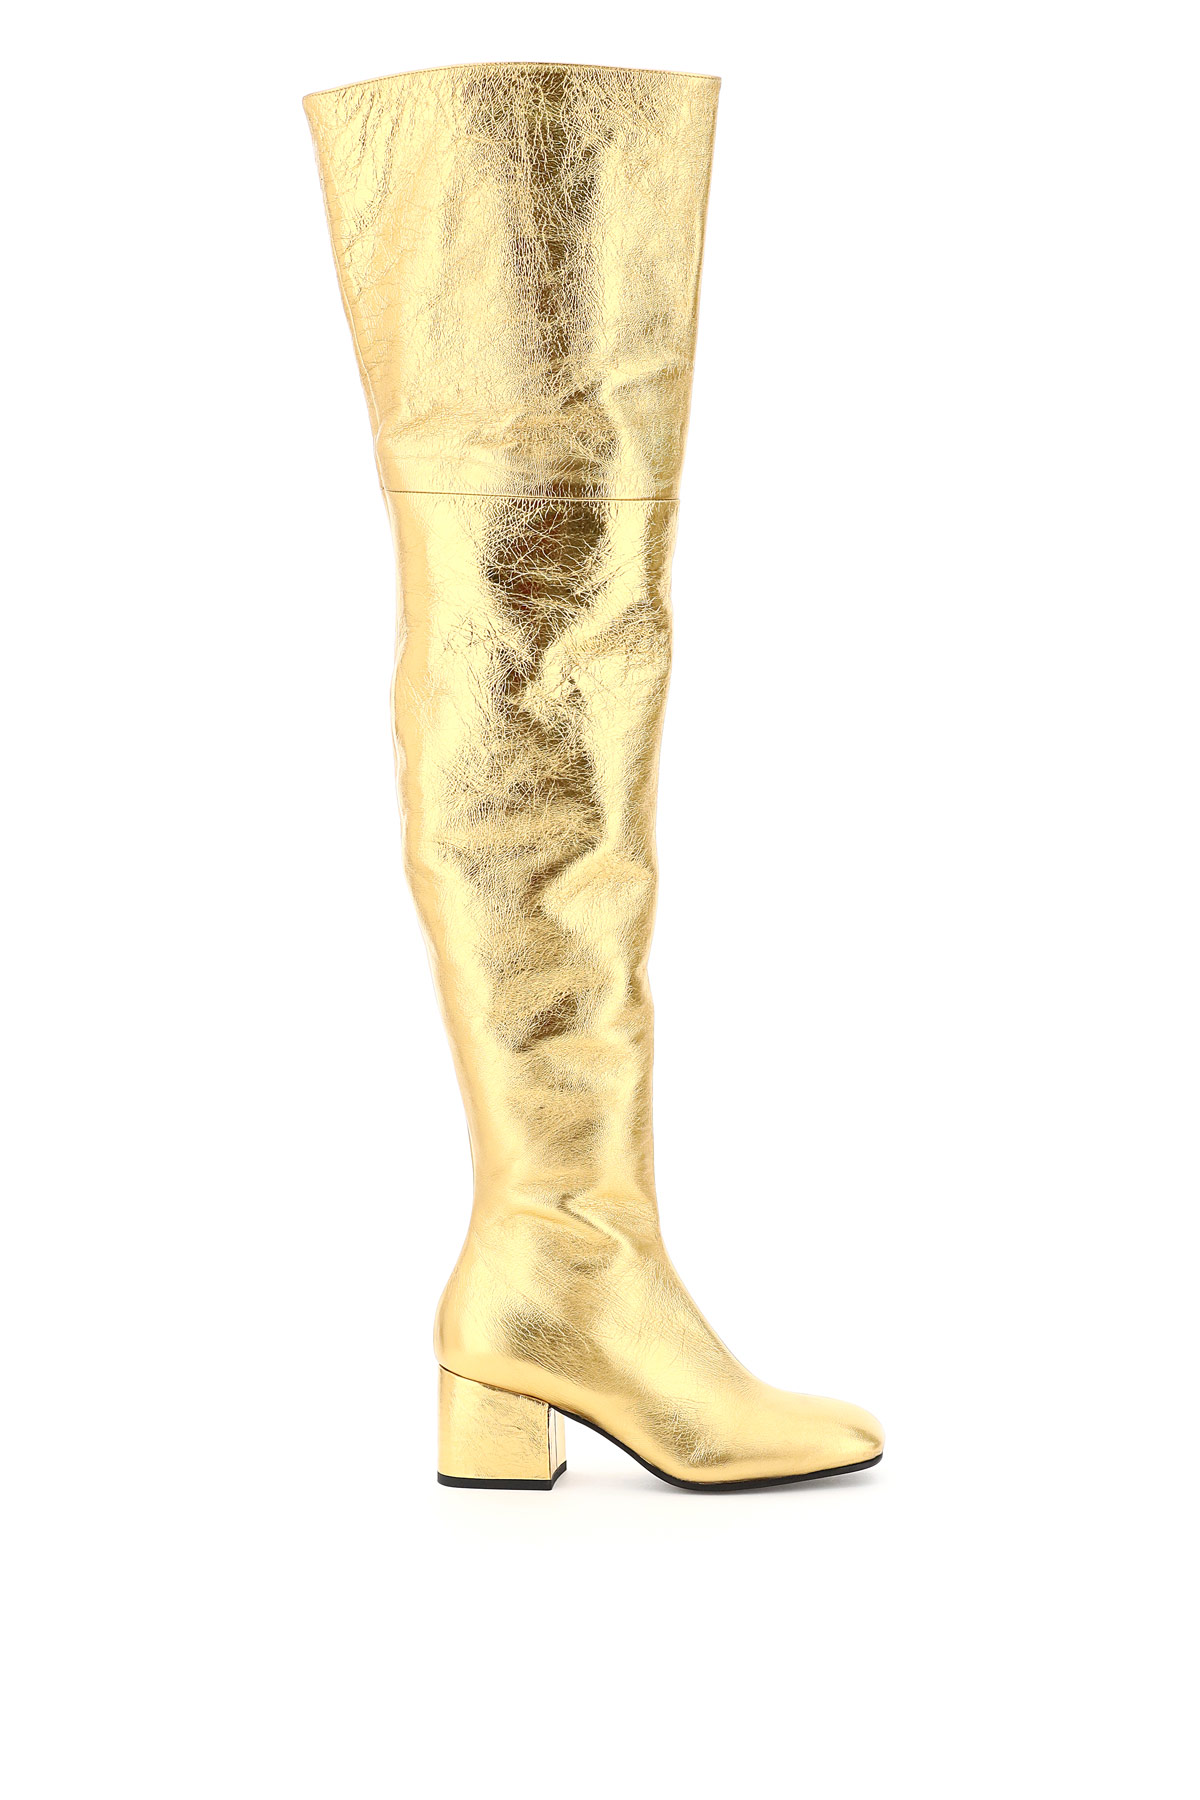 MARNI OVERSIZED BOOT IN LAMINATED NAPPA 38 Gold Leather